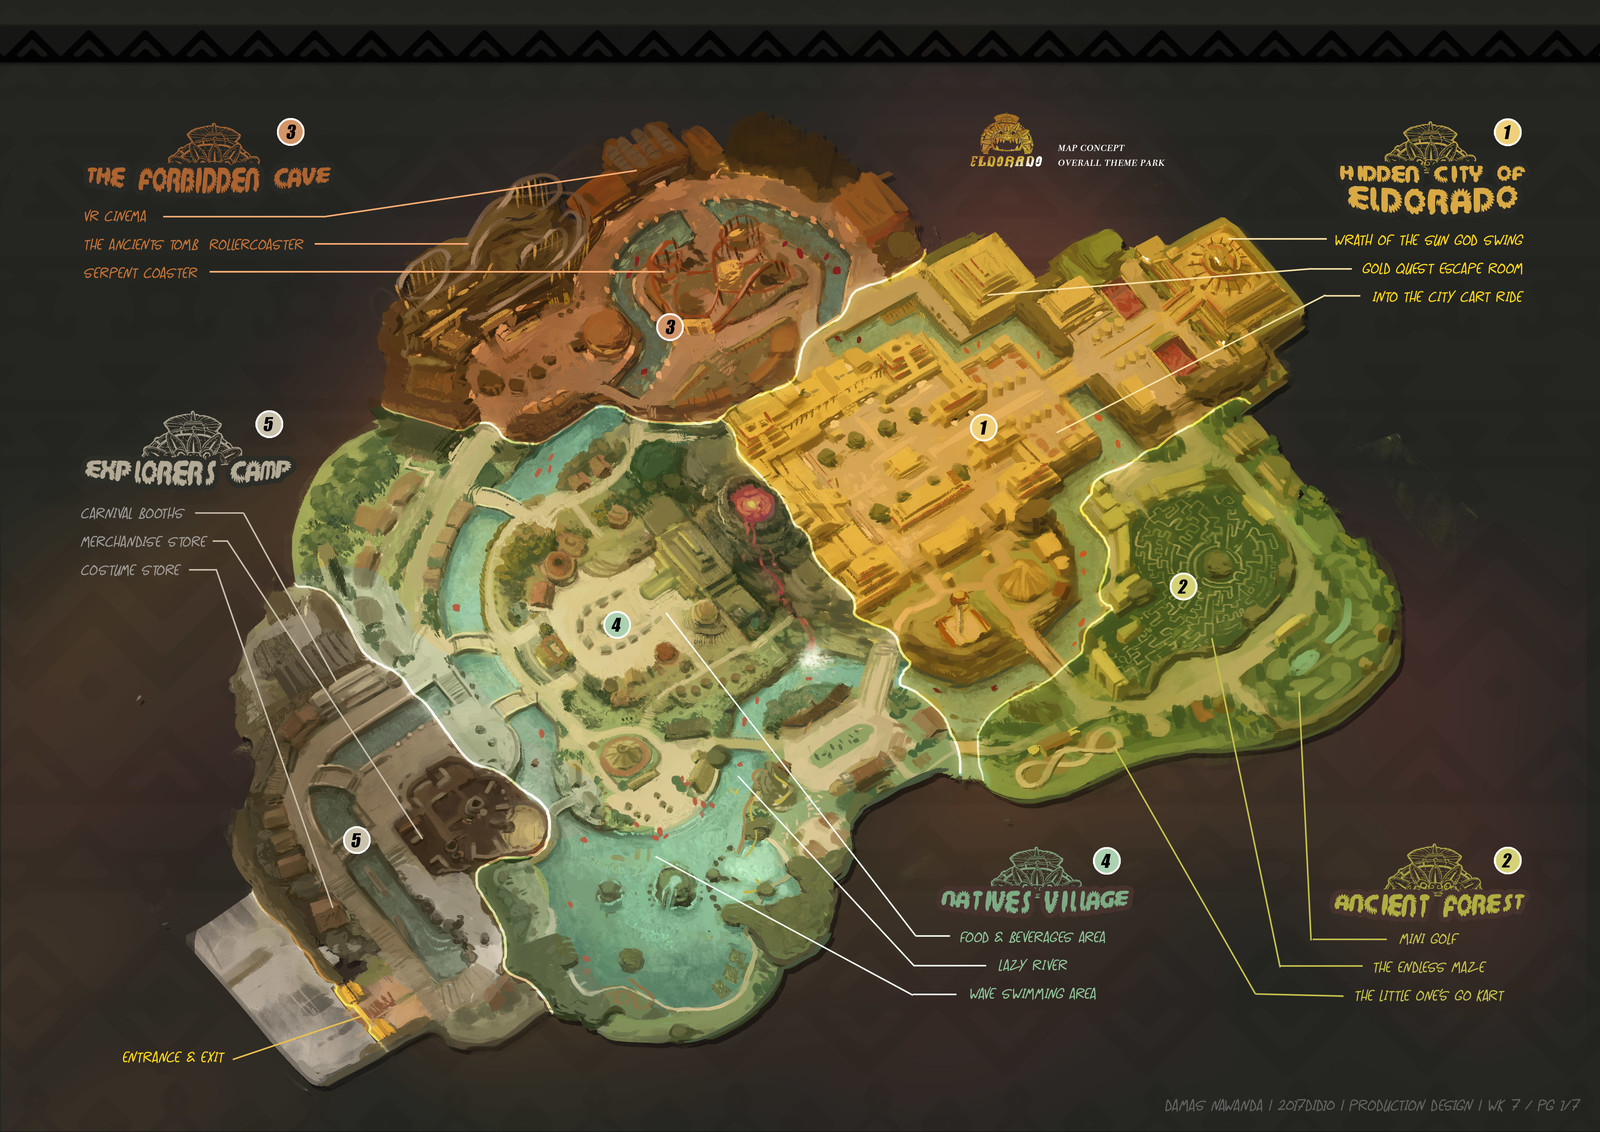 Eldorado Theme Park Map